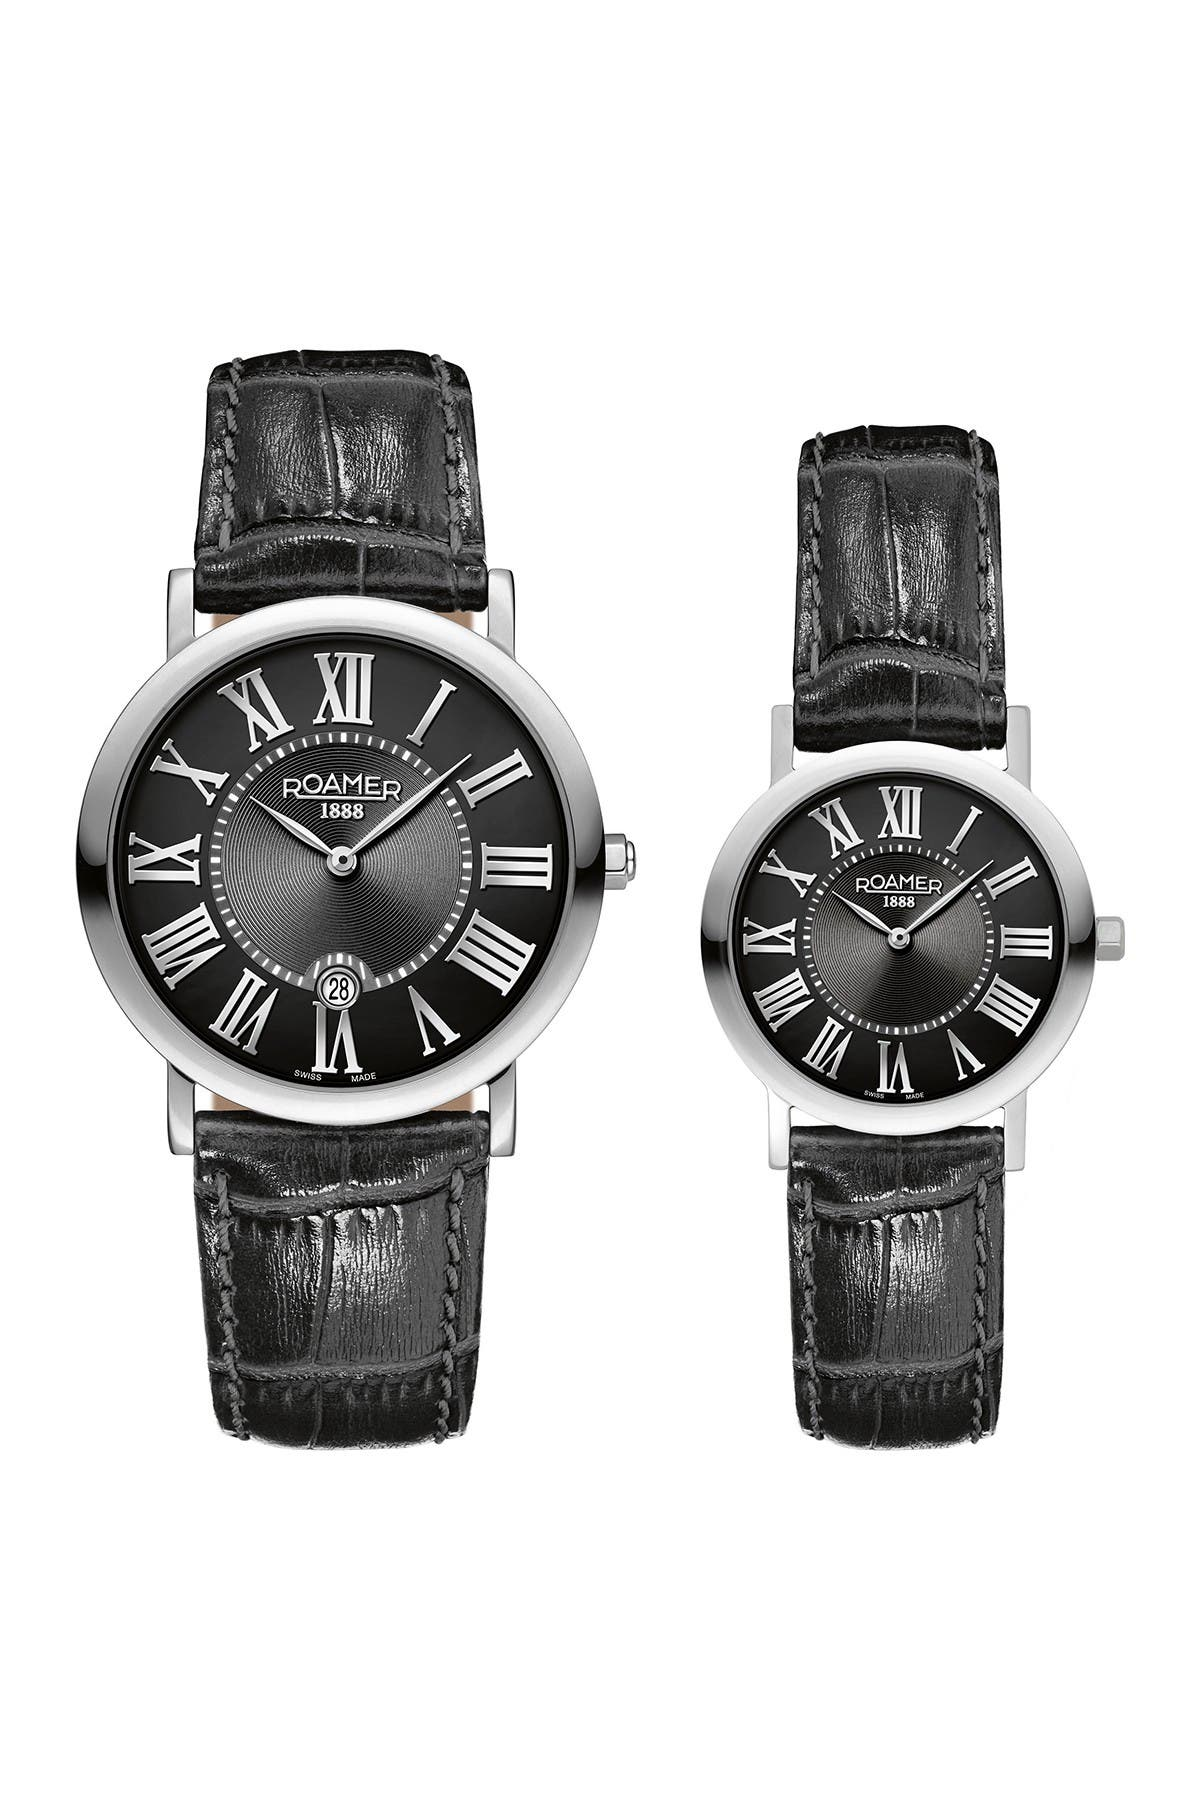 Image of Roamer Limelight His & Hers 2-Hand Date Watch Set